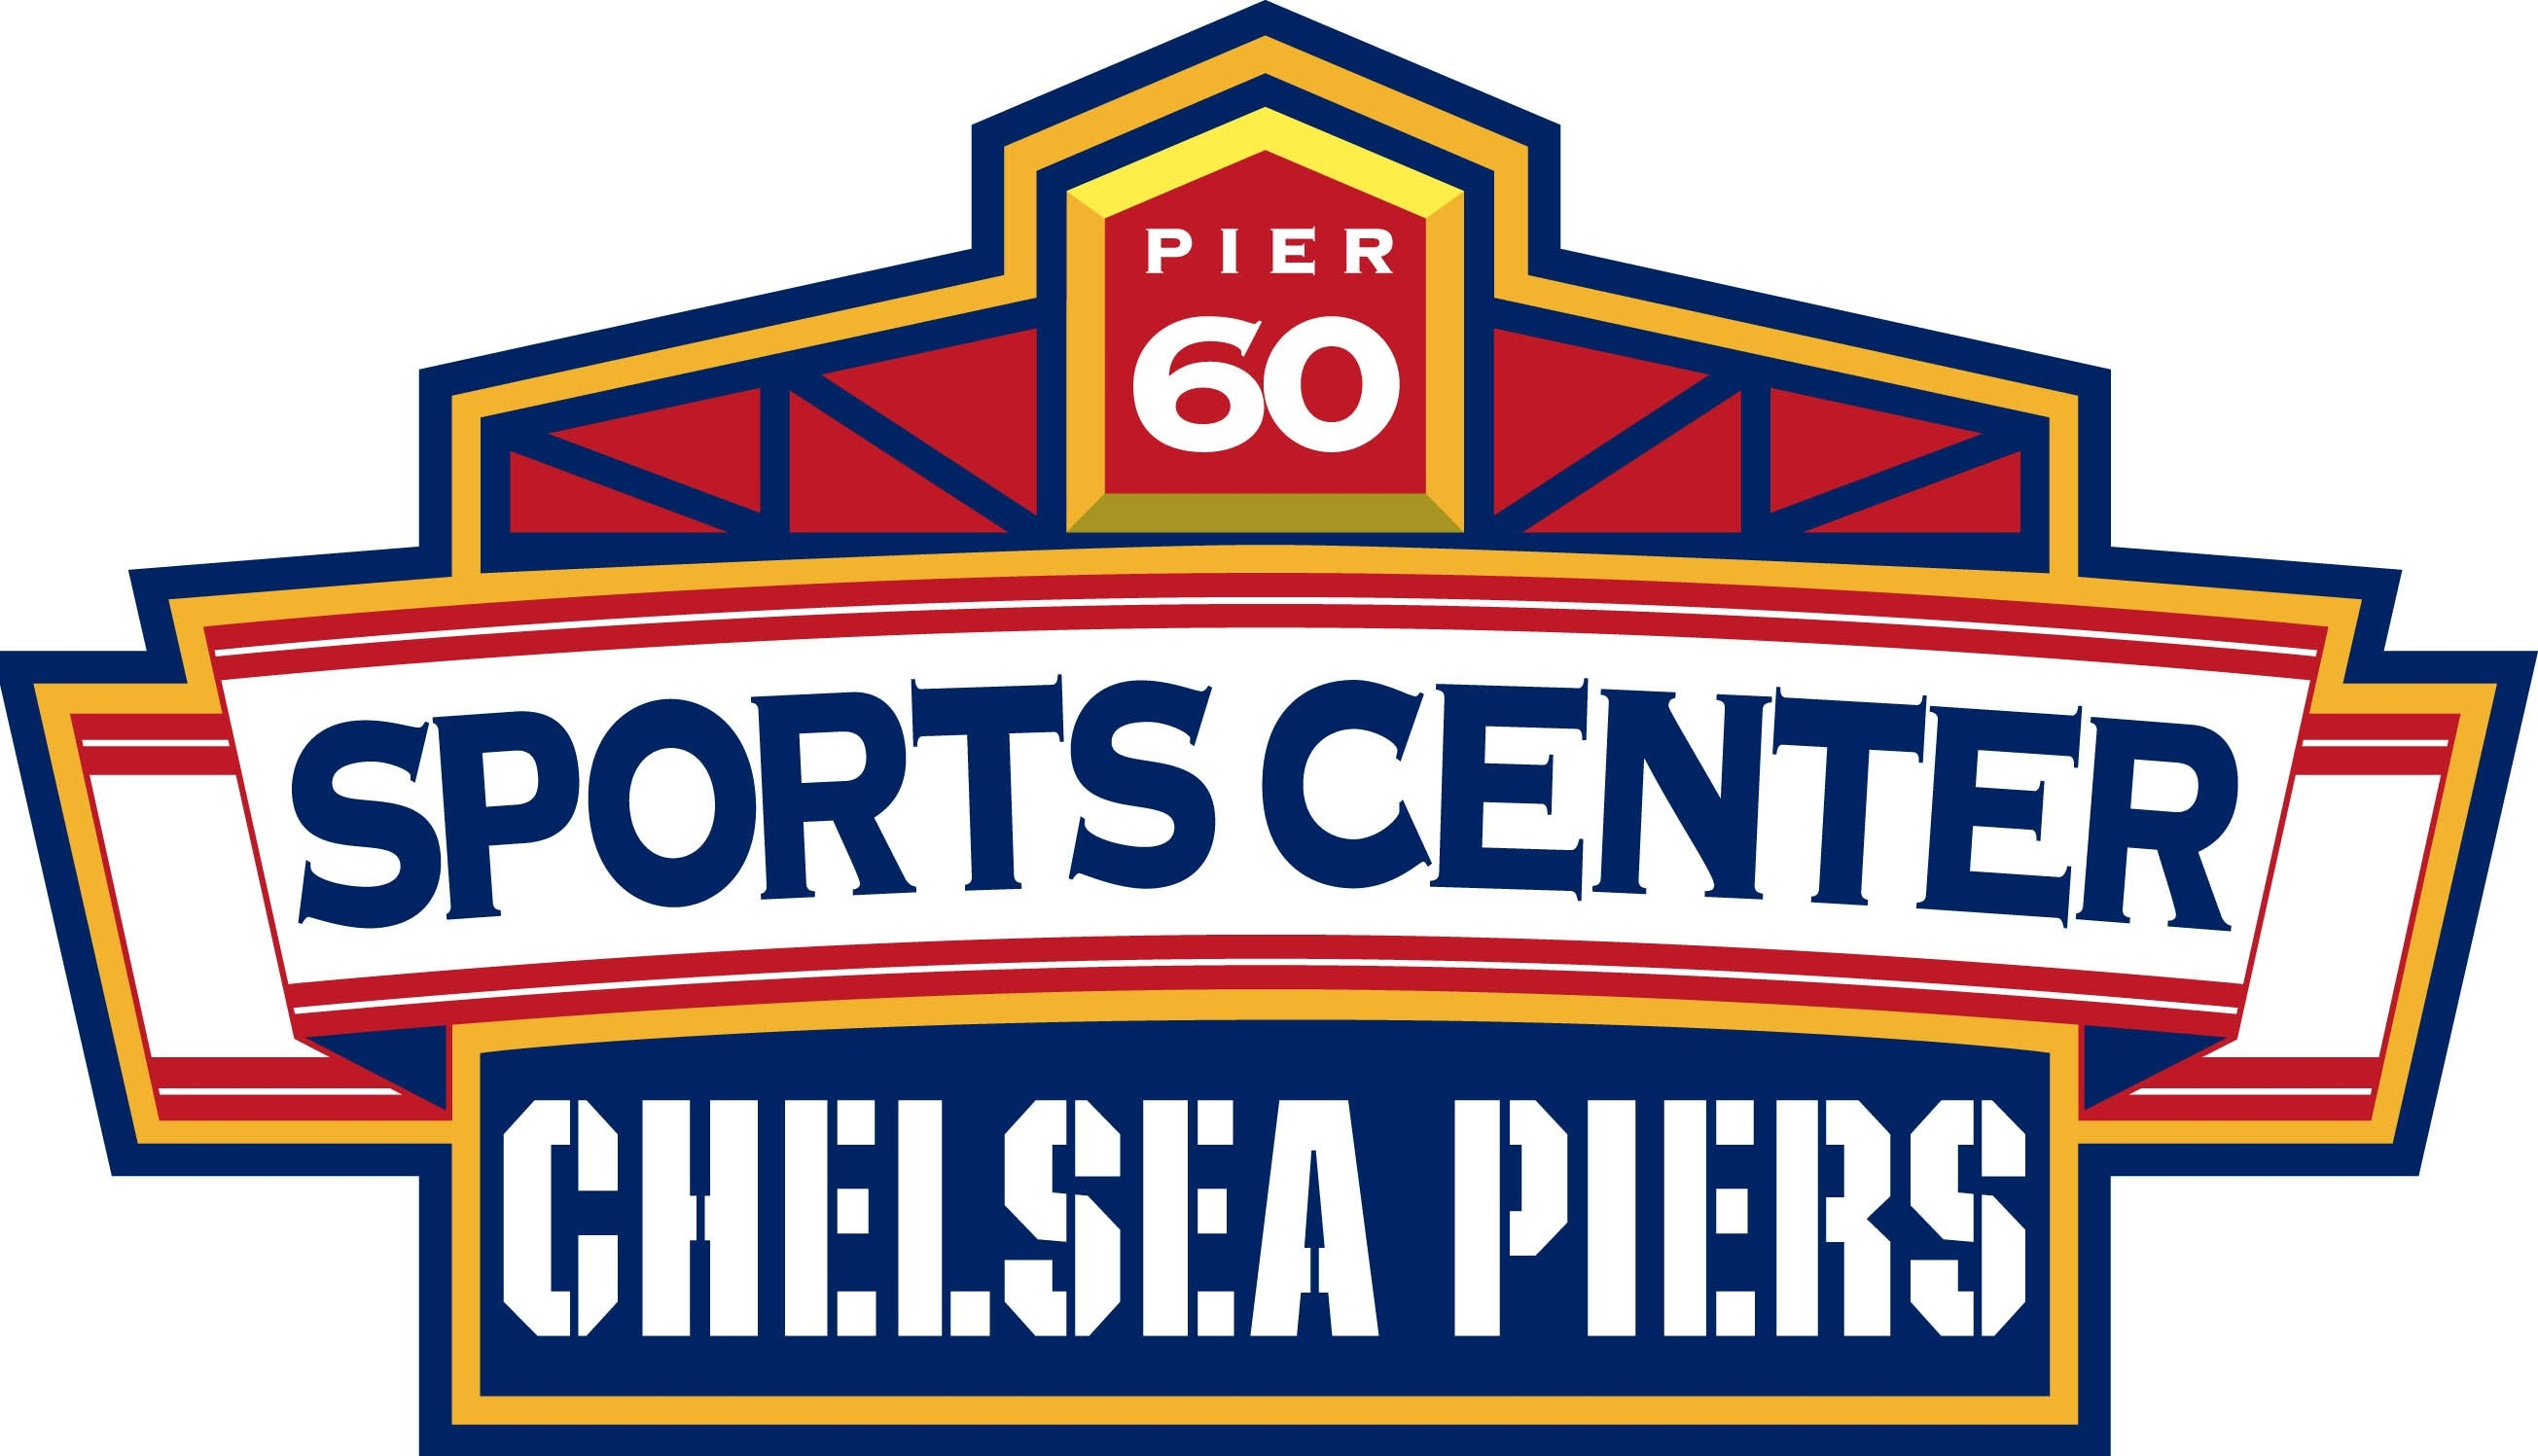 Charitybuzz: Get Fit with 1 Year Membership to The Sports Center.